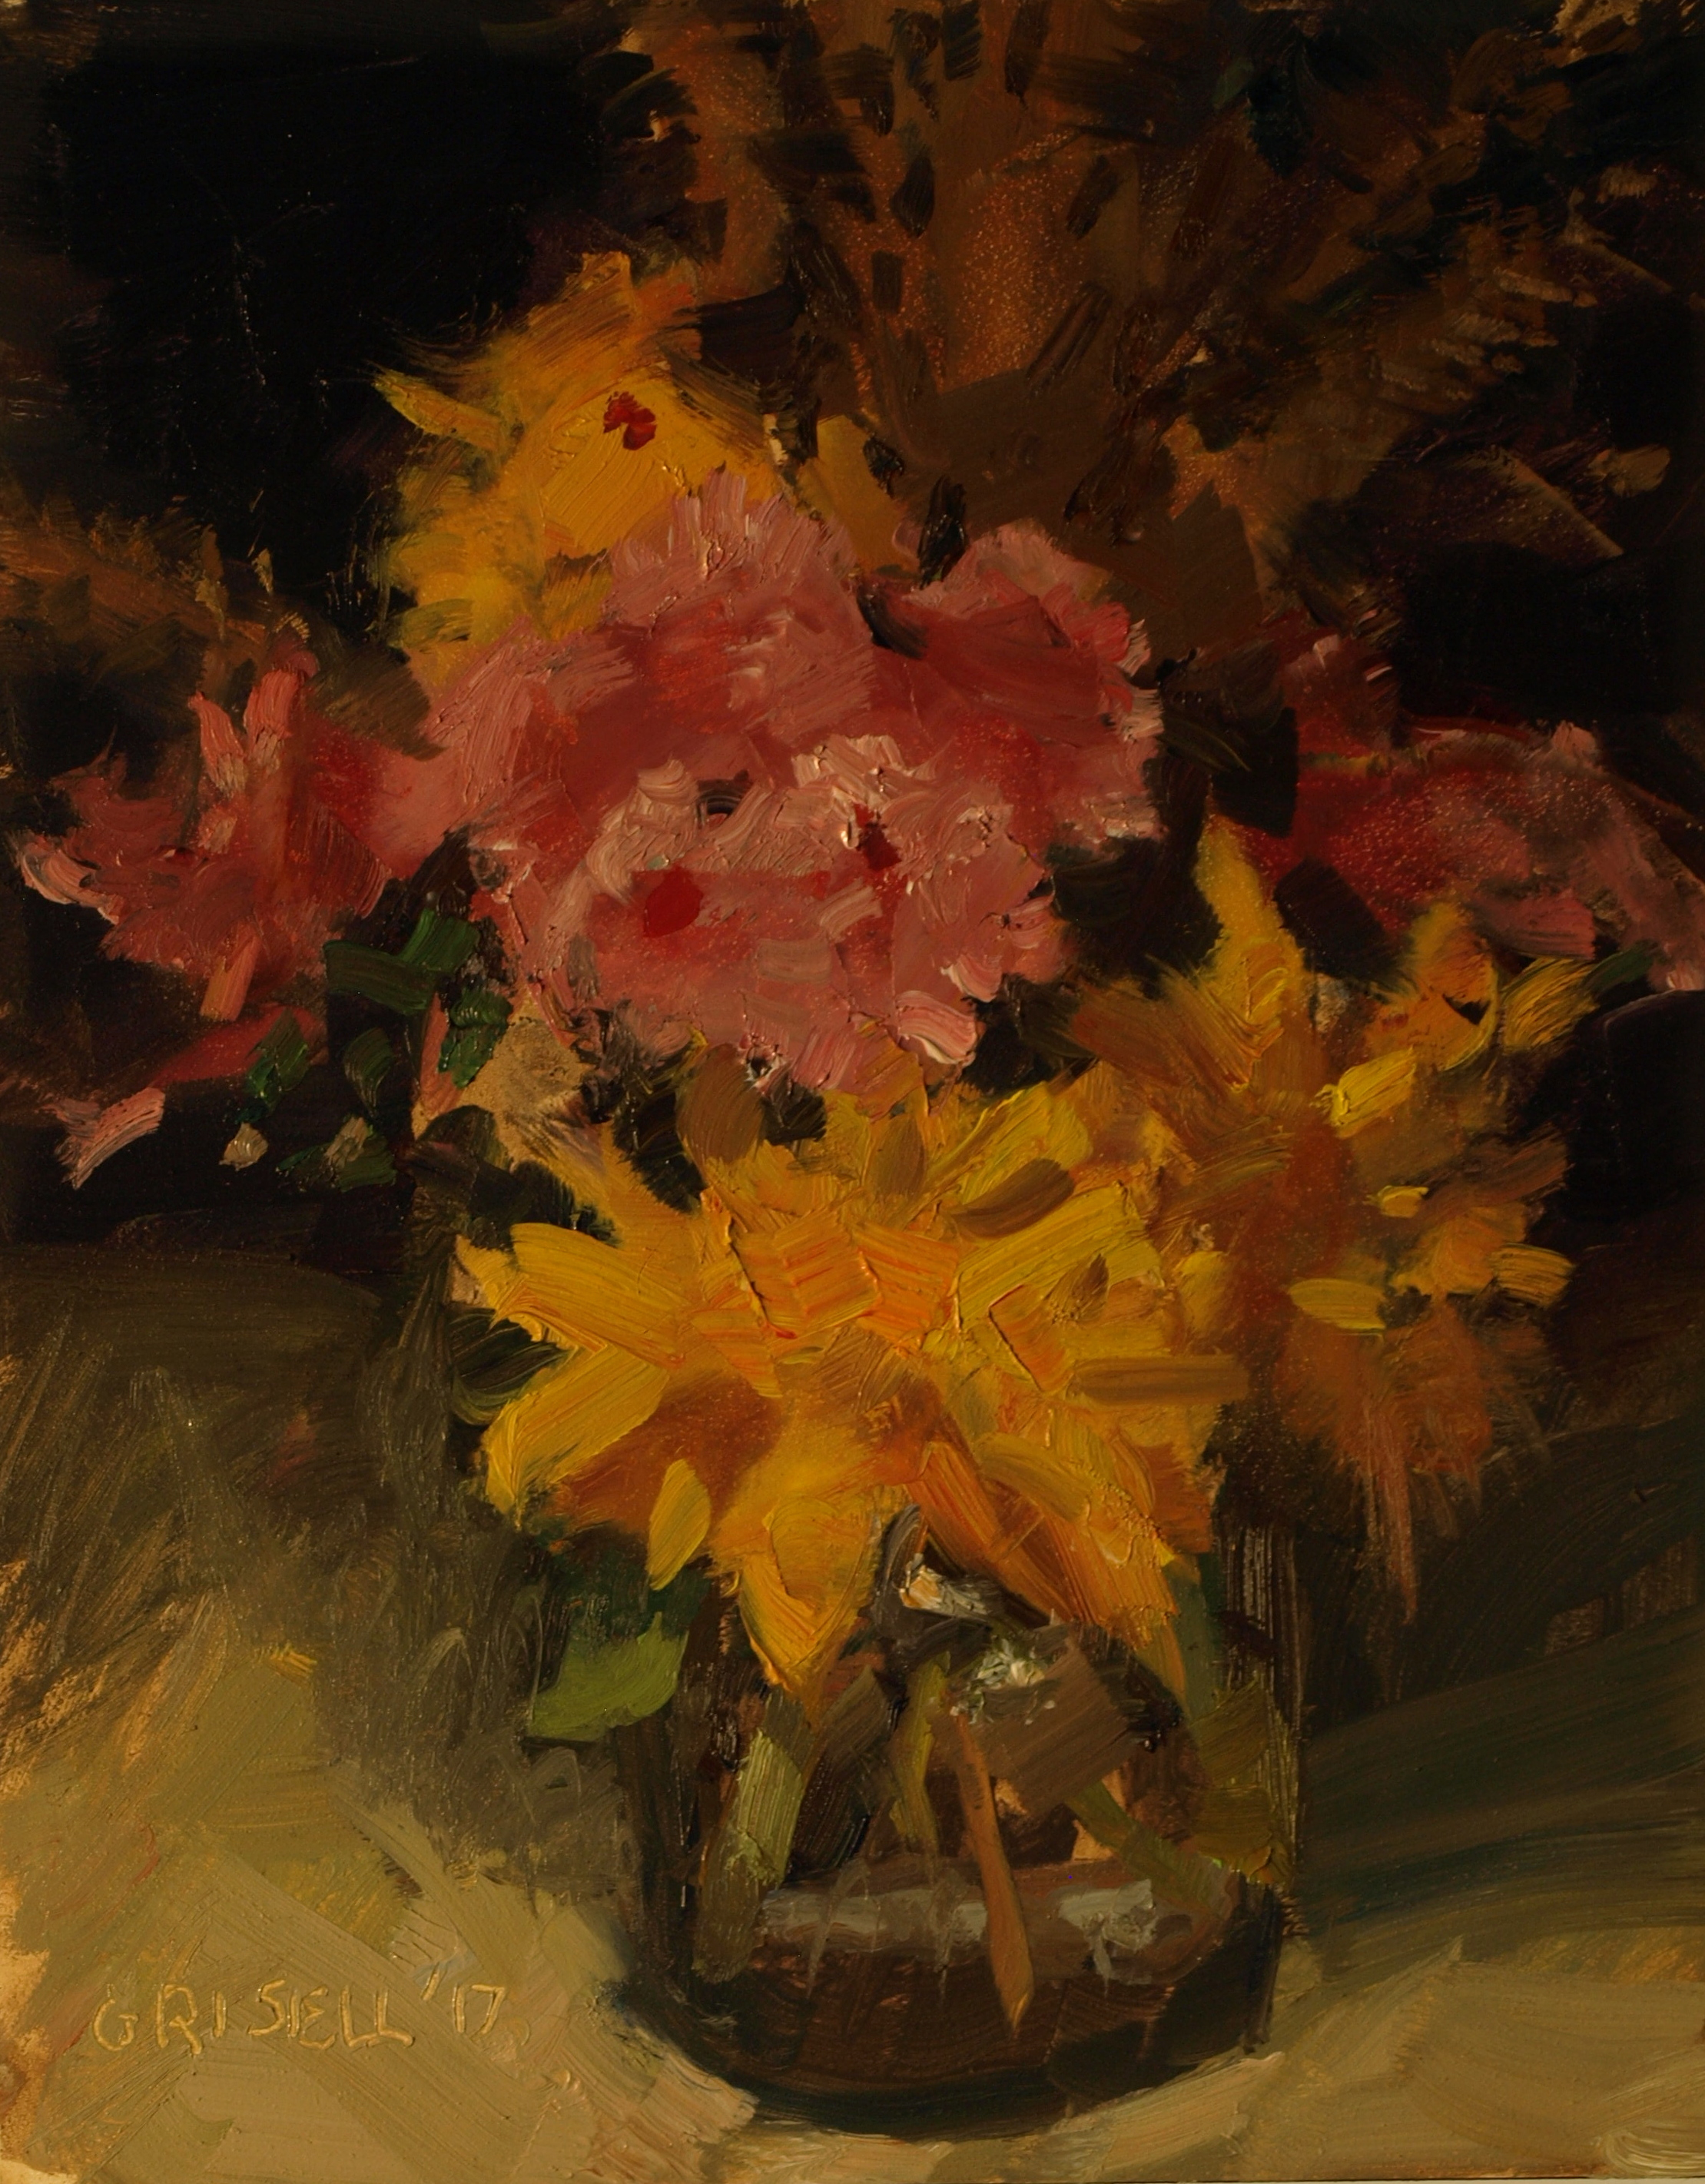 Late Summer Blooms, Oil on Panel, 10 x 8 Inches, by Susan Grisell, $200